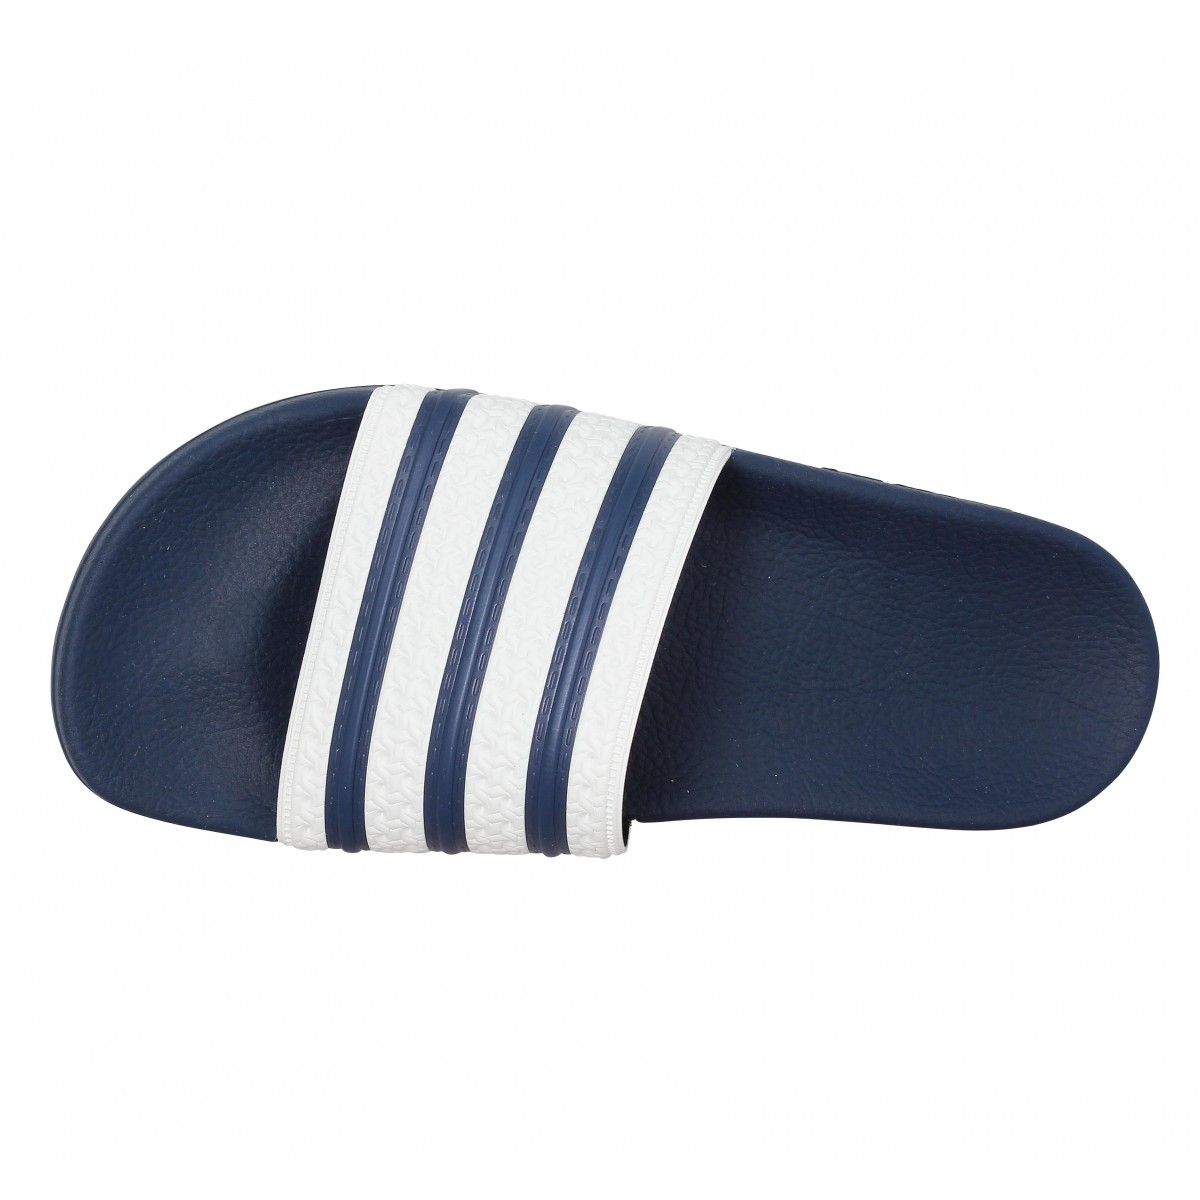 super popular 5fd26 a4e46 Tongs ADIDAS Adilette Homme Bleu. 1